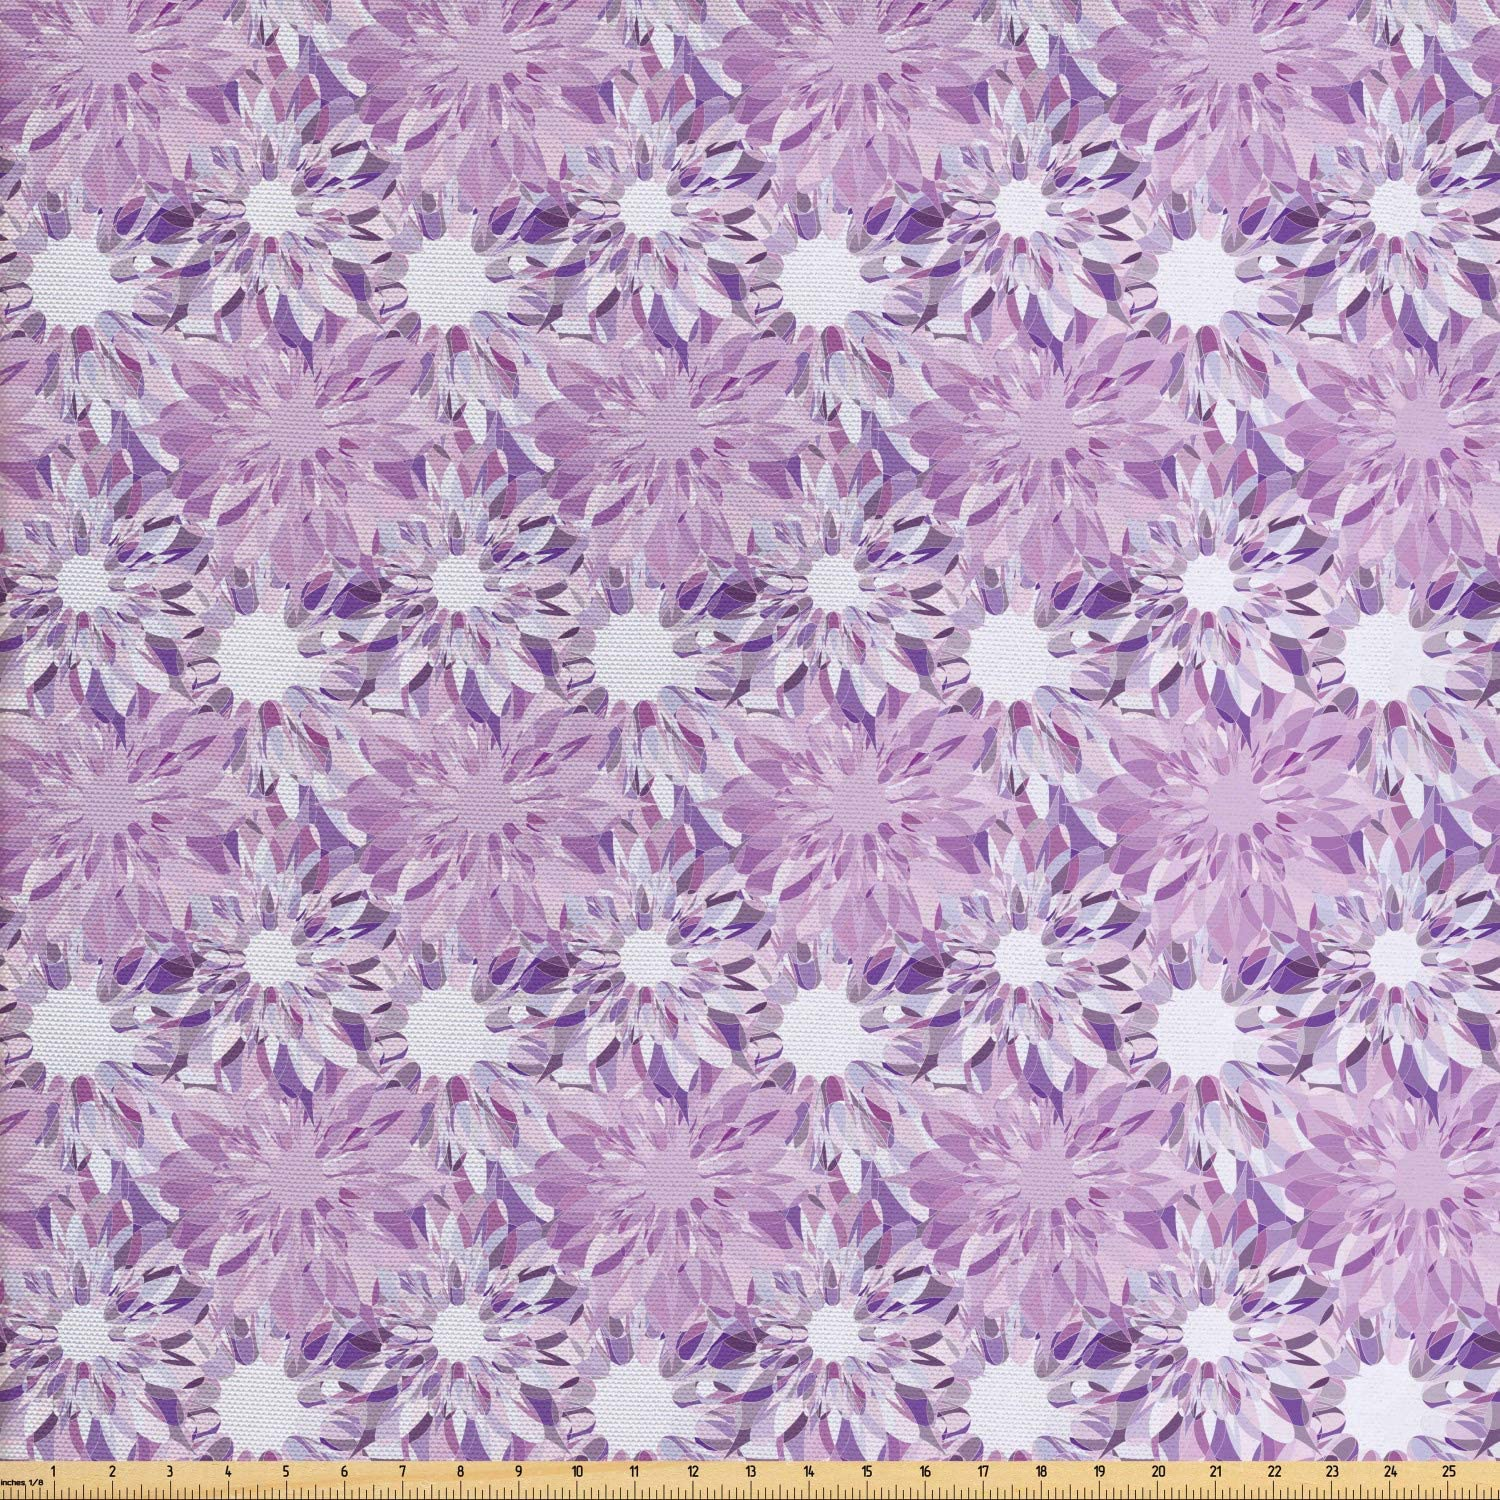 Ambesonne Mauve Fabric by The Yard, Digital Guiloche Fractal Crystal Floral Ornamental Retro Design, Decorative Fabric for Upholstery and Home Accents, 1 Yard, Lilac and Lavender